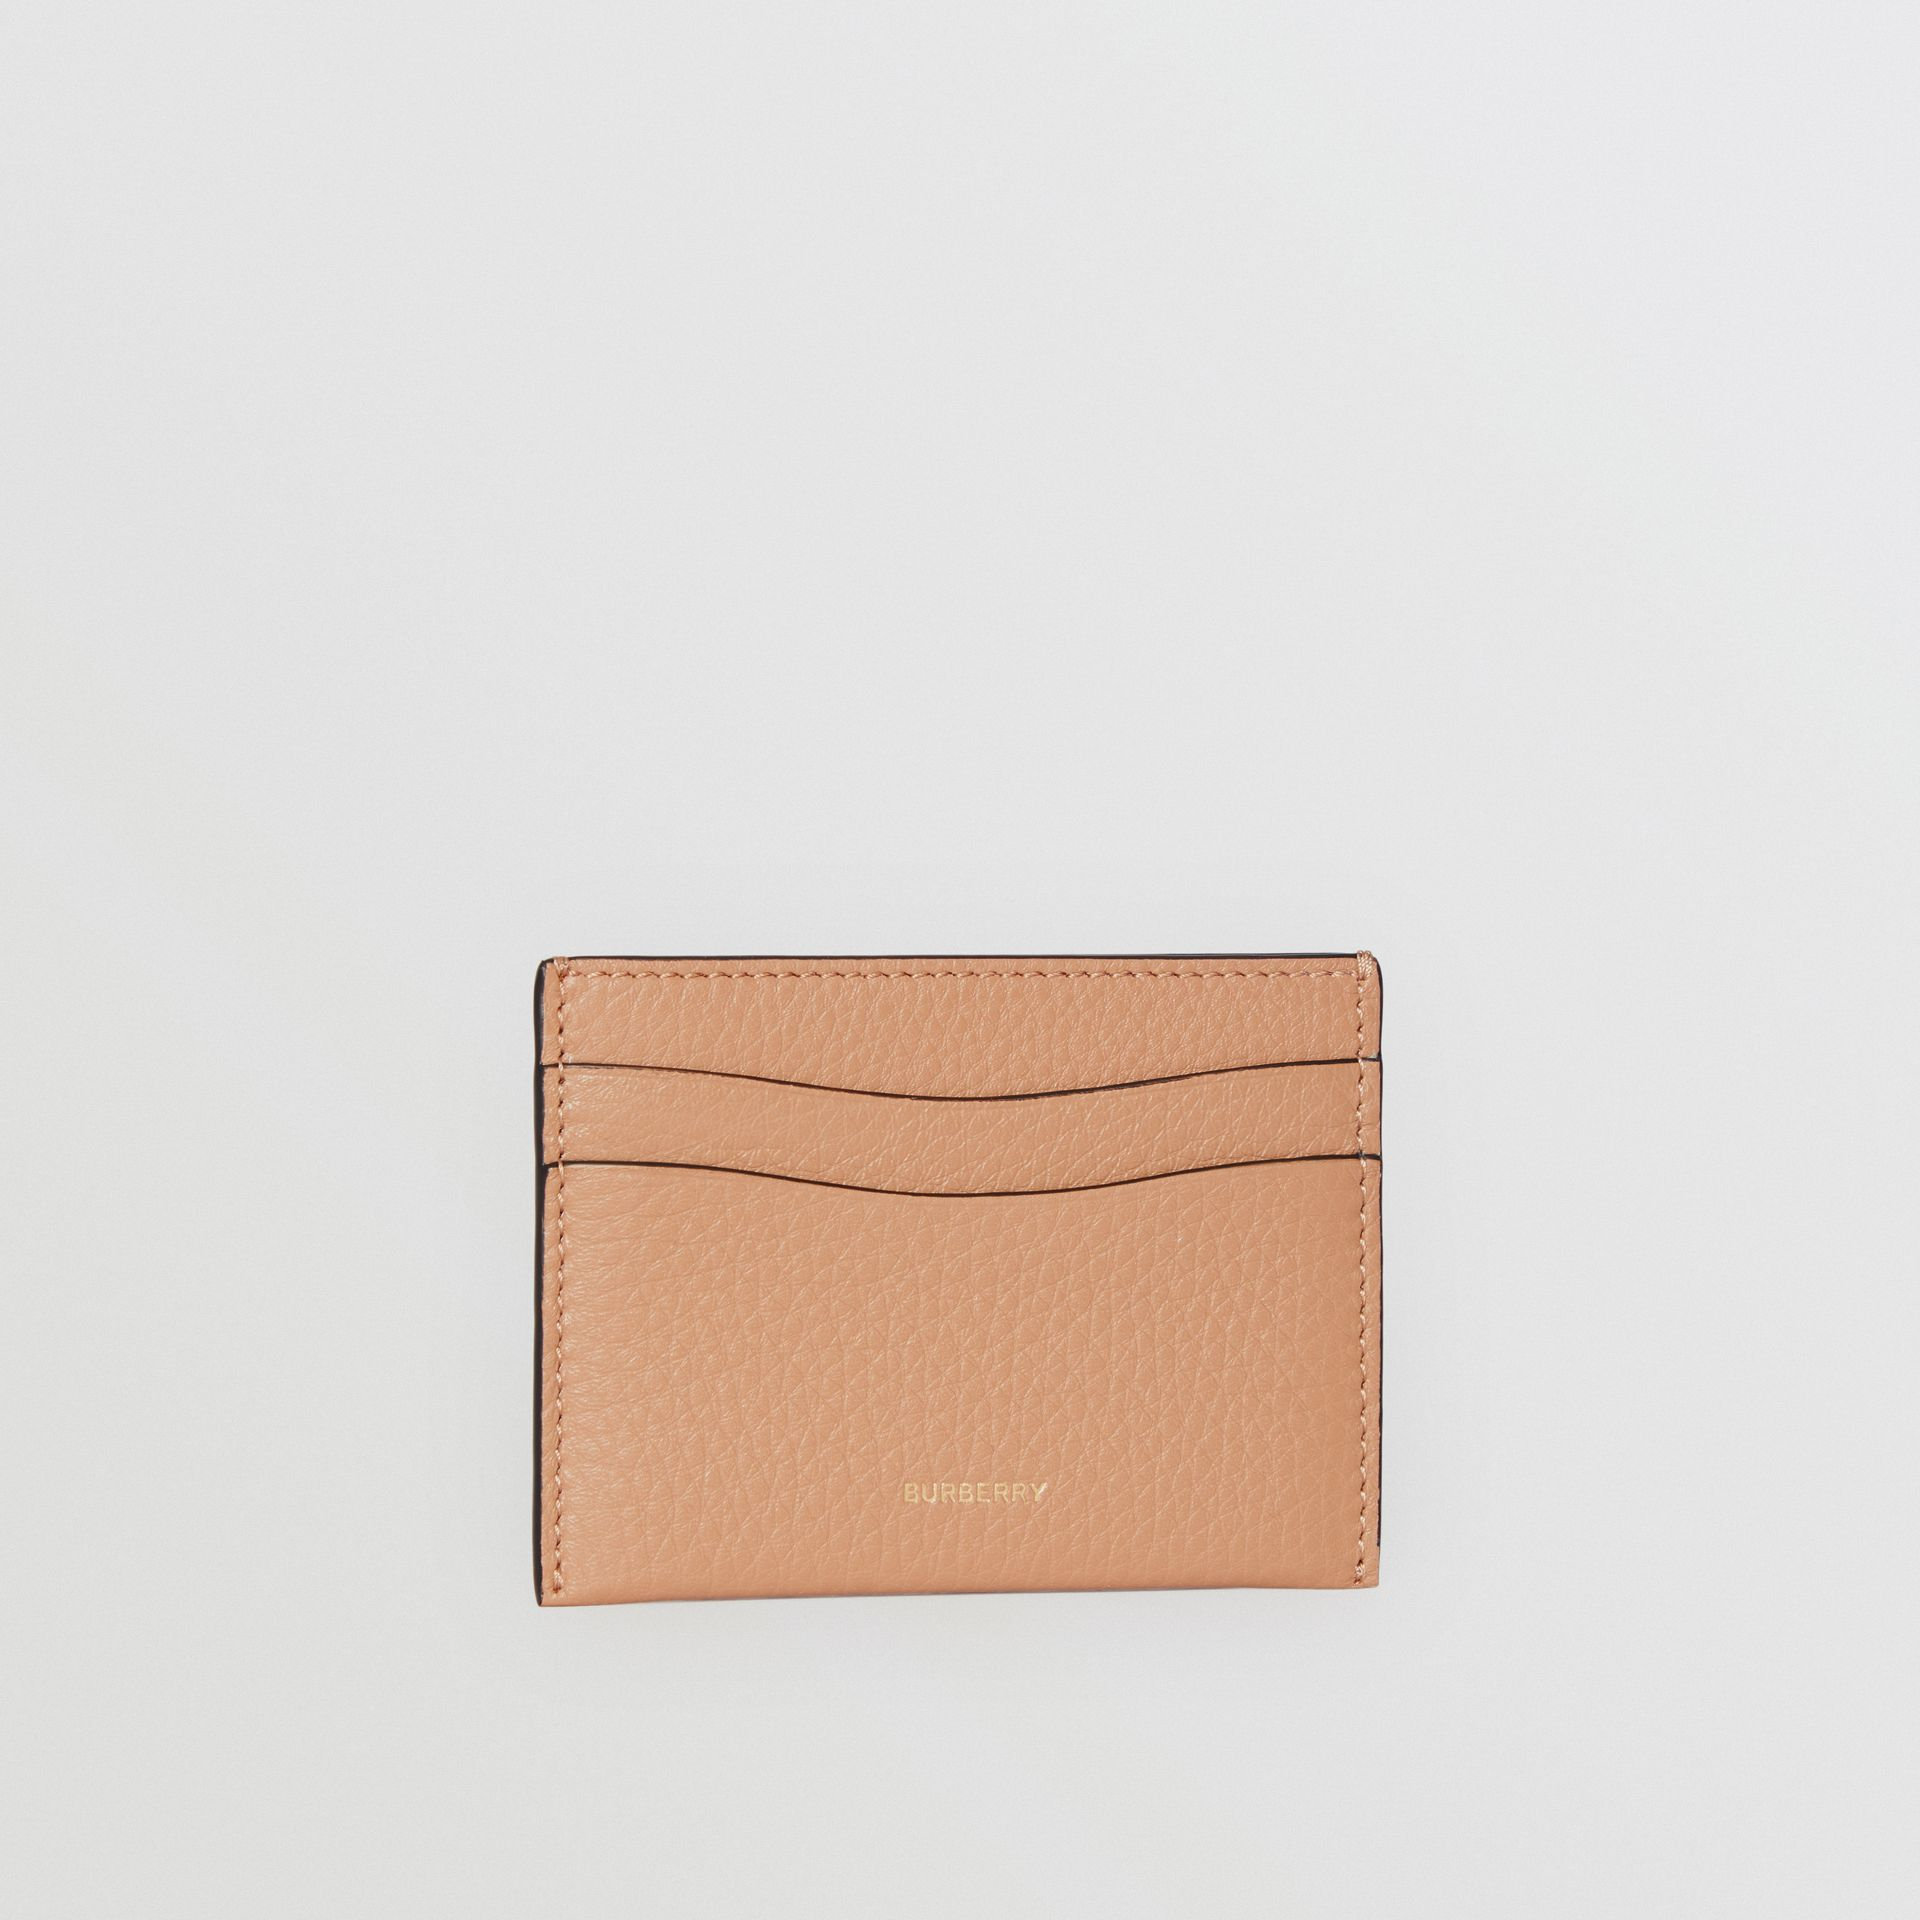 Grainy Logo Leather Card Case in Light Camel - Women | Burberry - gallery image 3